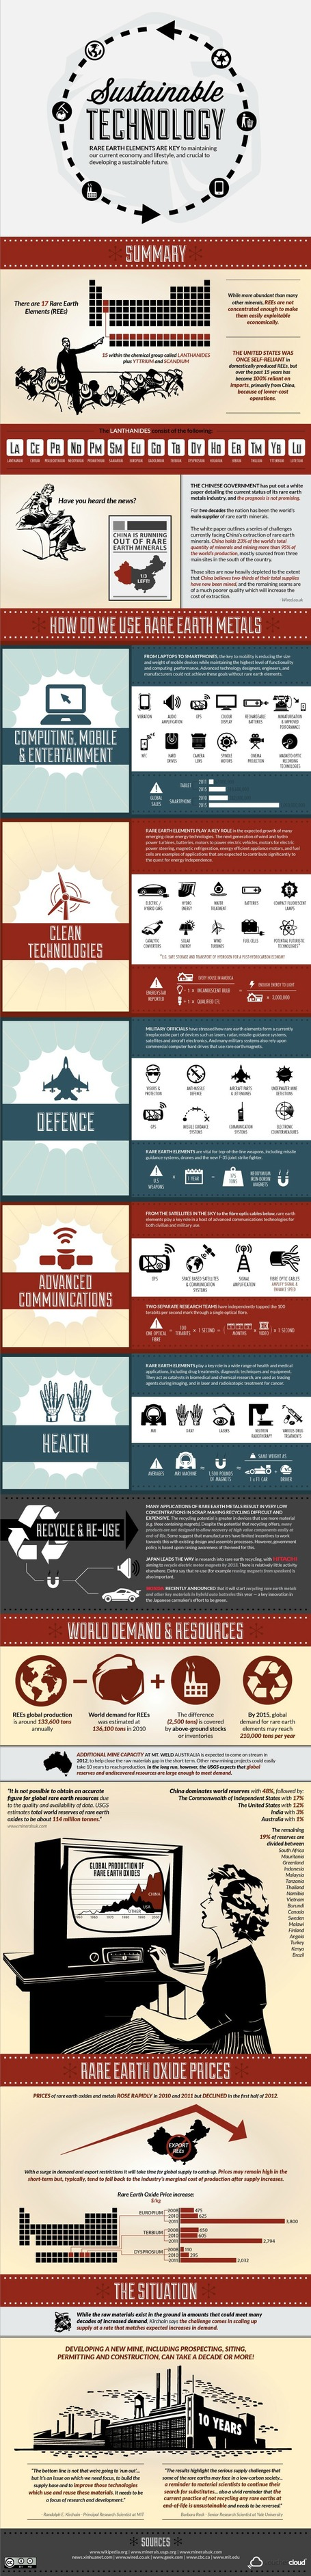 Sustainable Technology: Our phones are depleting natural resources [INFOGRAPHIC] | Digital Sustainability | Scoop.it